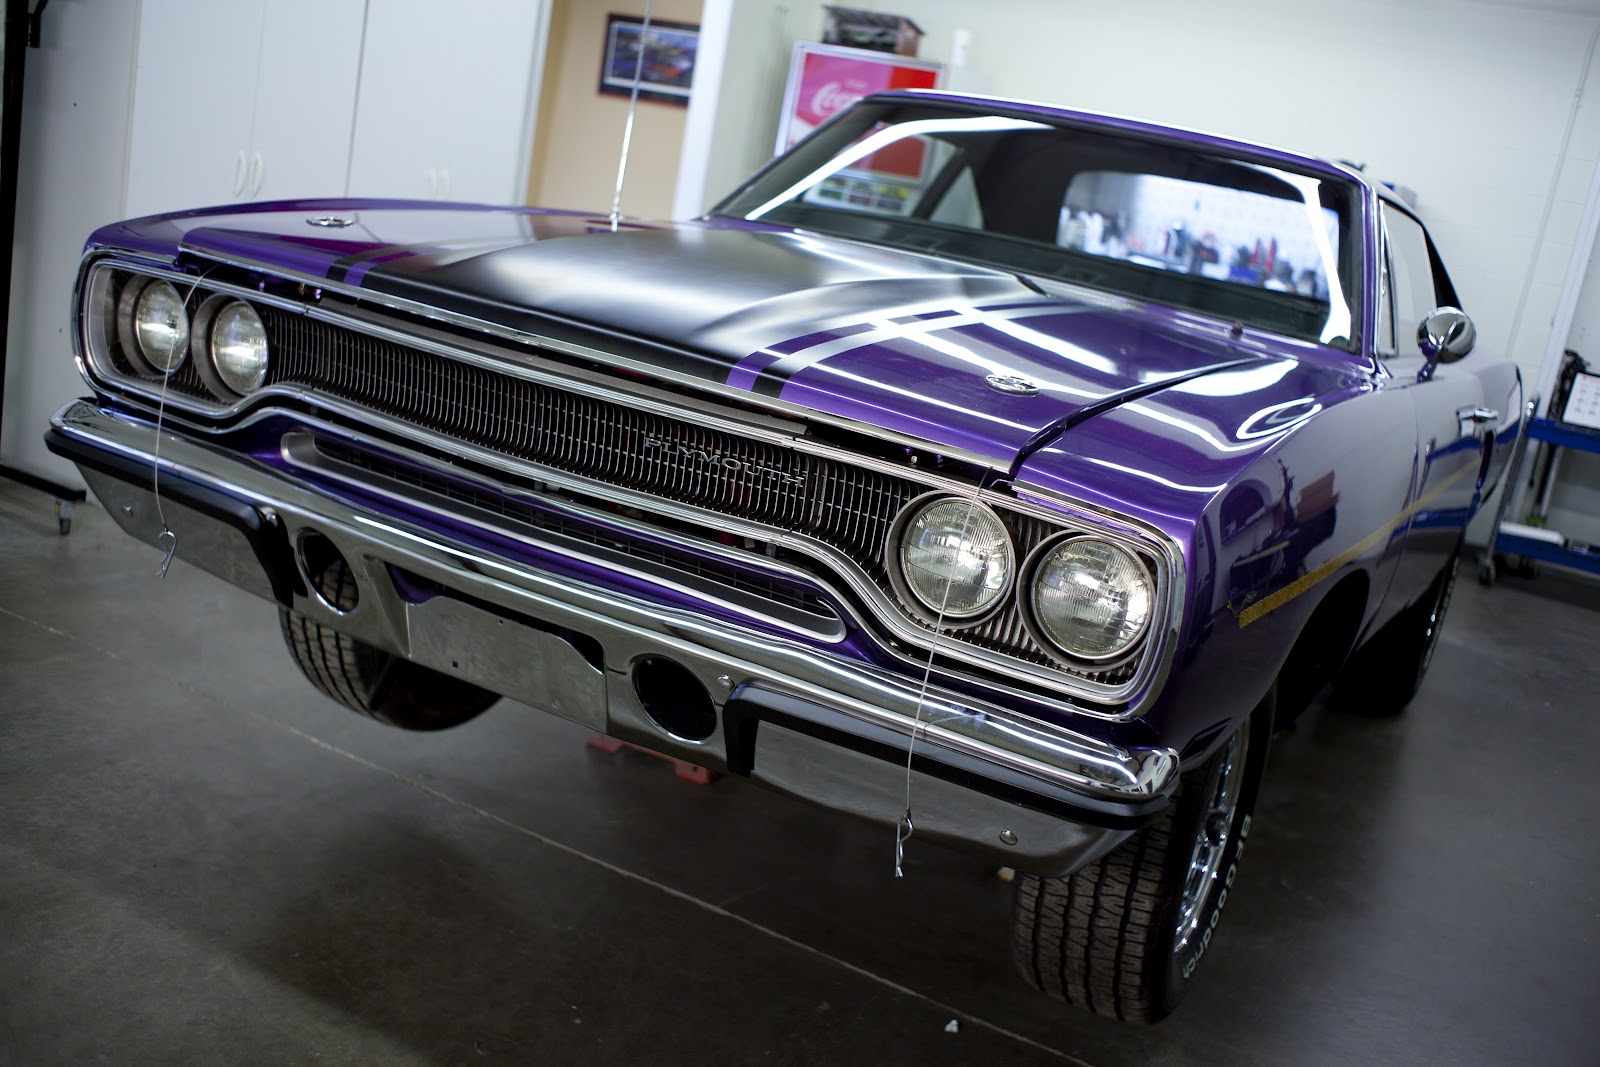 Mark and his team brought this road runner back to life